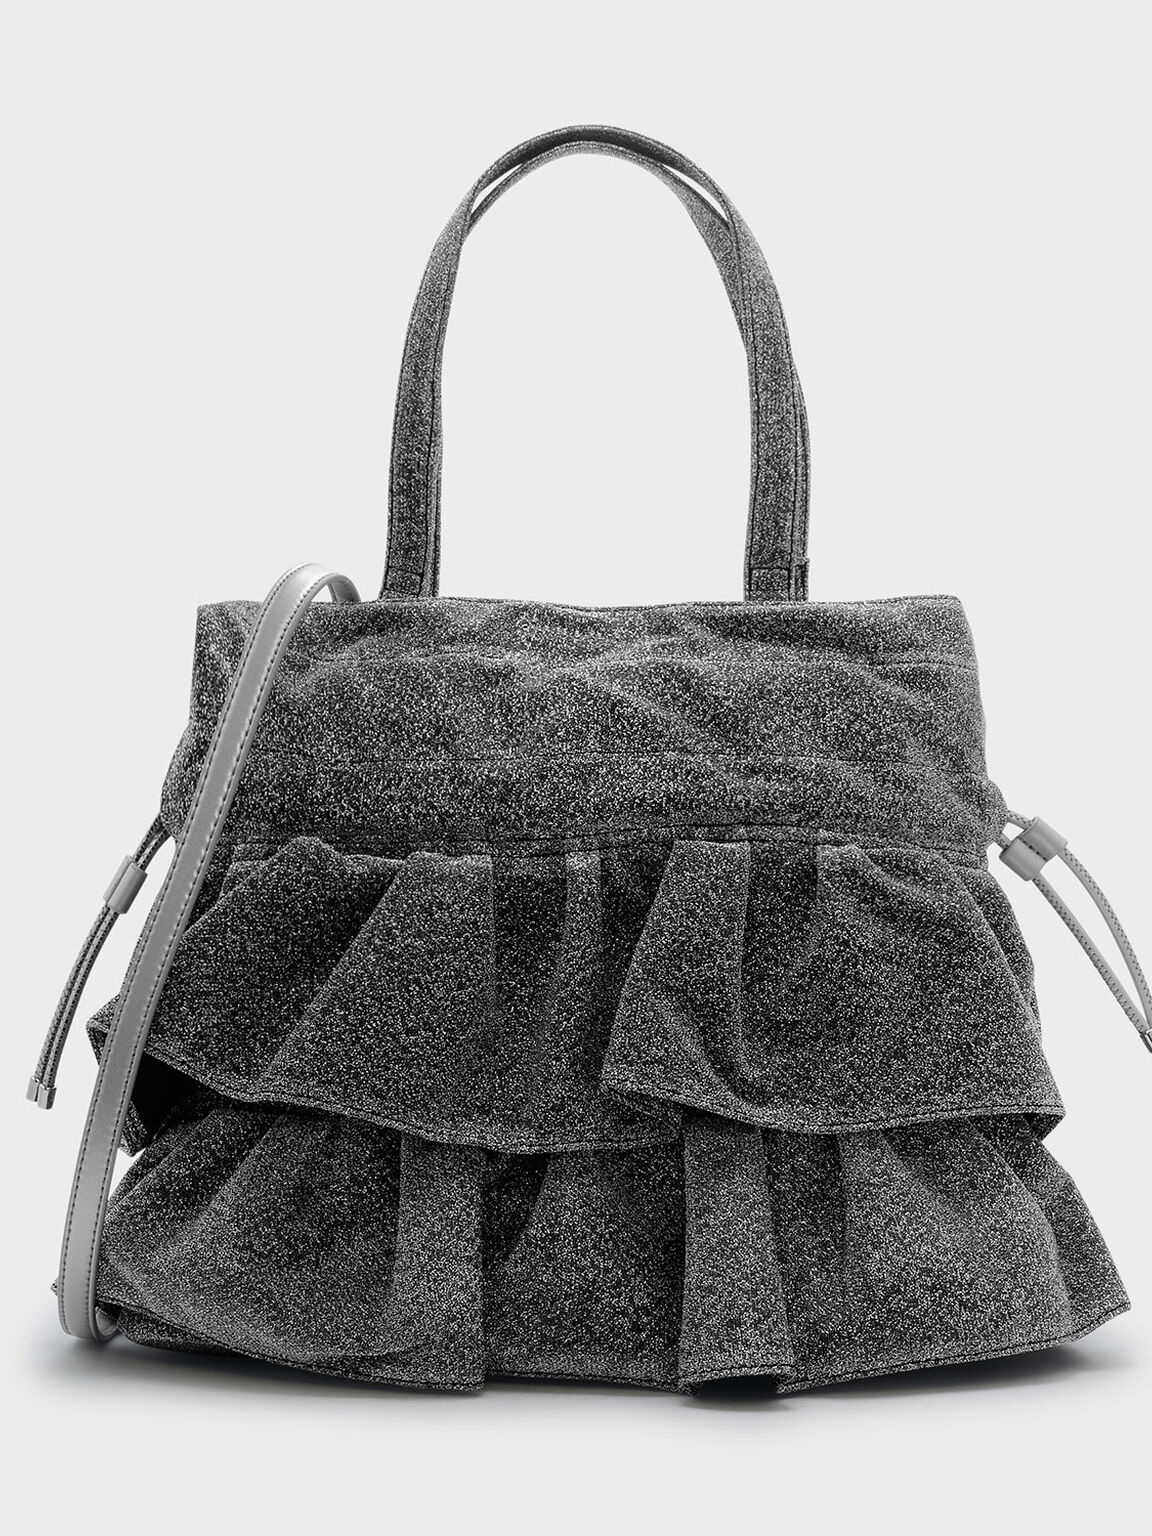 Ruffle Detail Shoulder Bag, Silver, hi-res